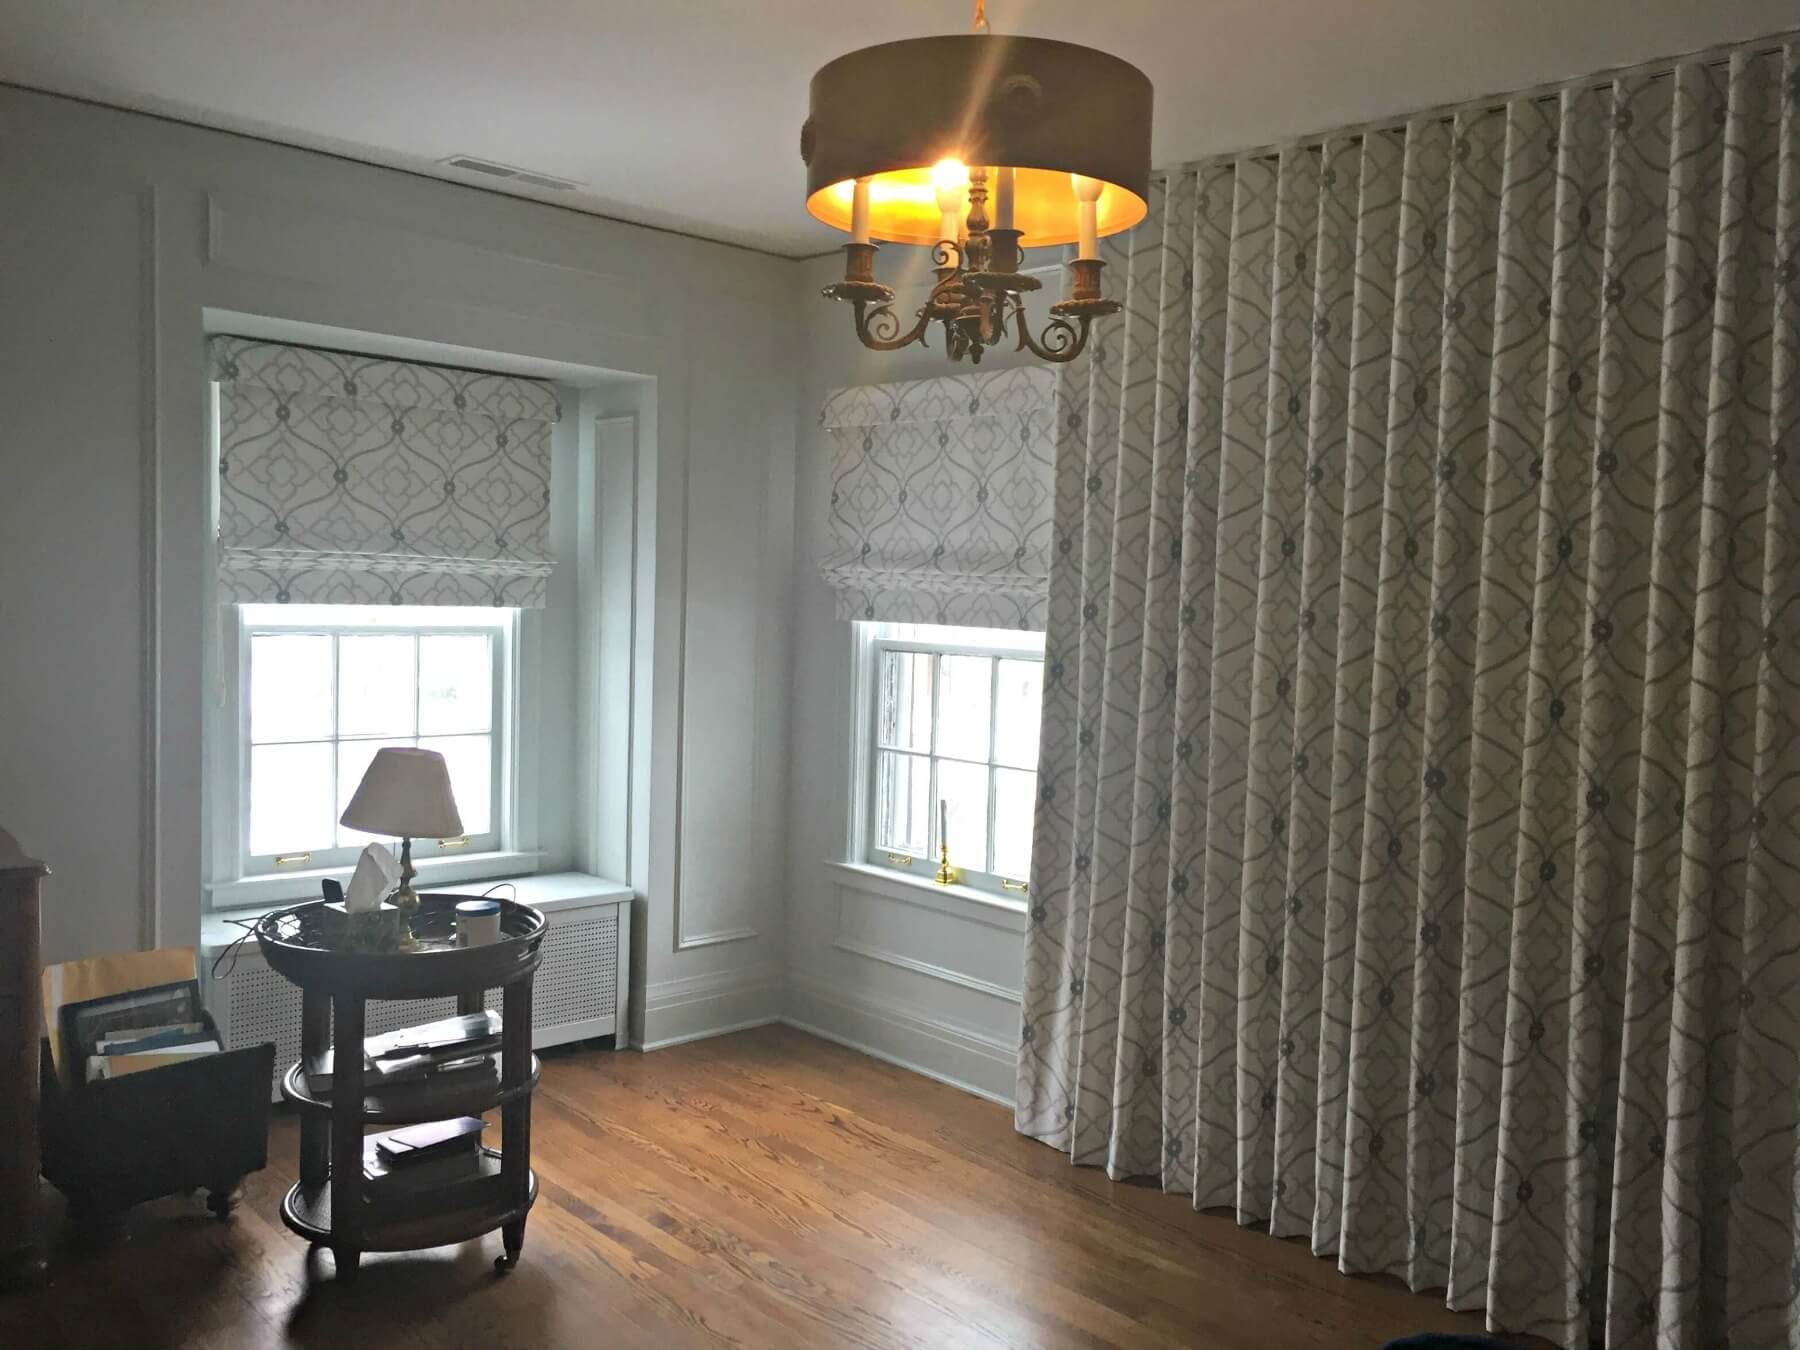 buying curtains or drapes window coverage